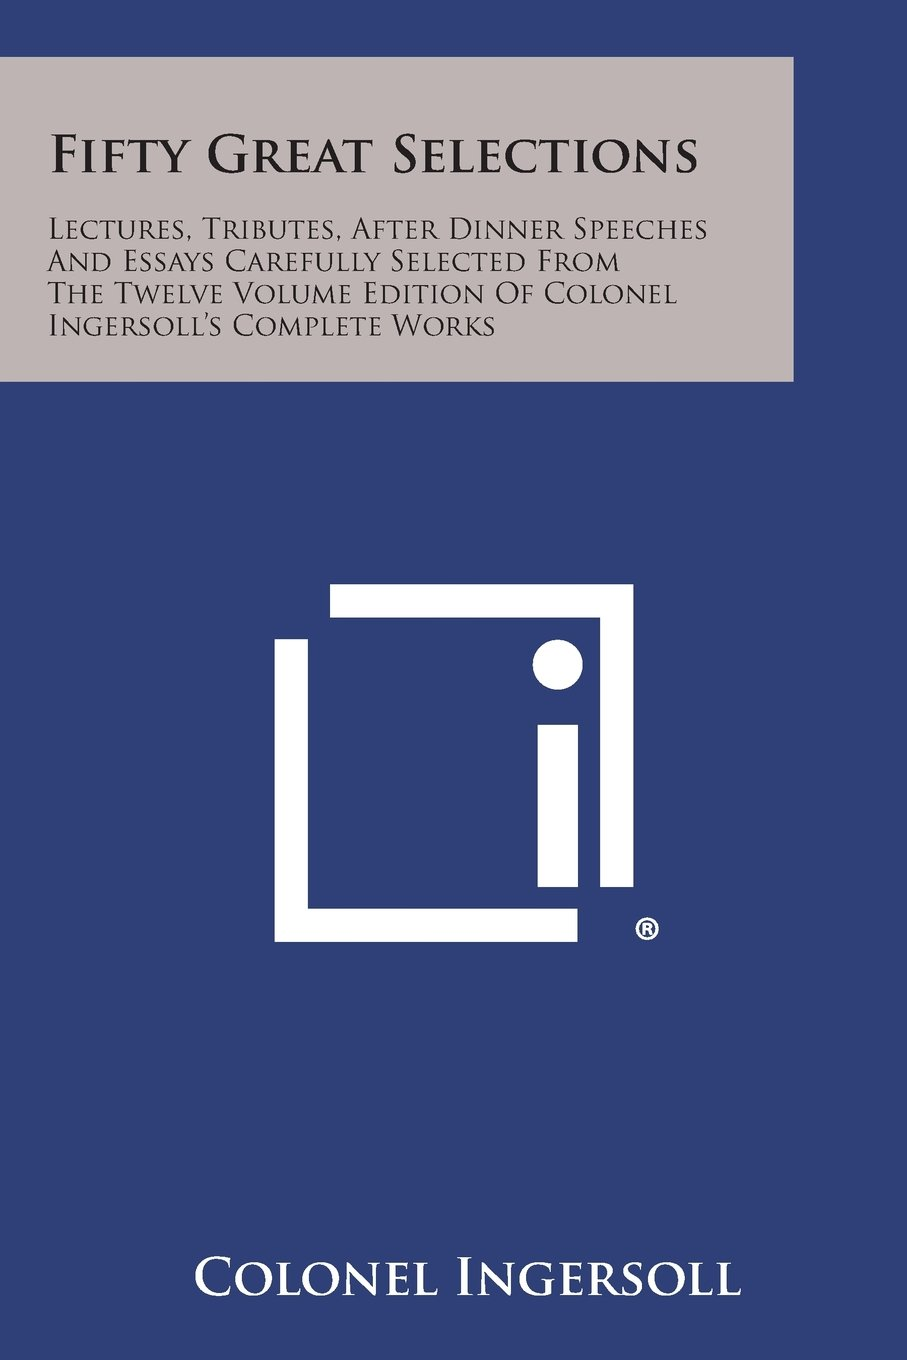 Download Fifty Great Selections: Lectures, Tributes, After Dinner Speeches and Essays Carefully Selected from the Twelve Volume Edition of Colonel Inge ebook